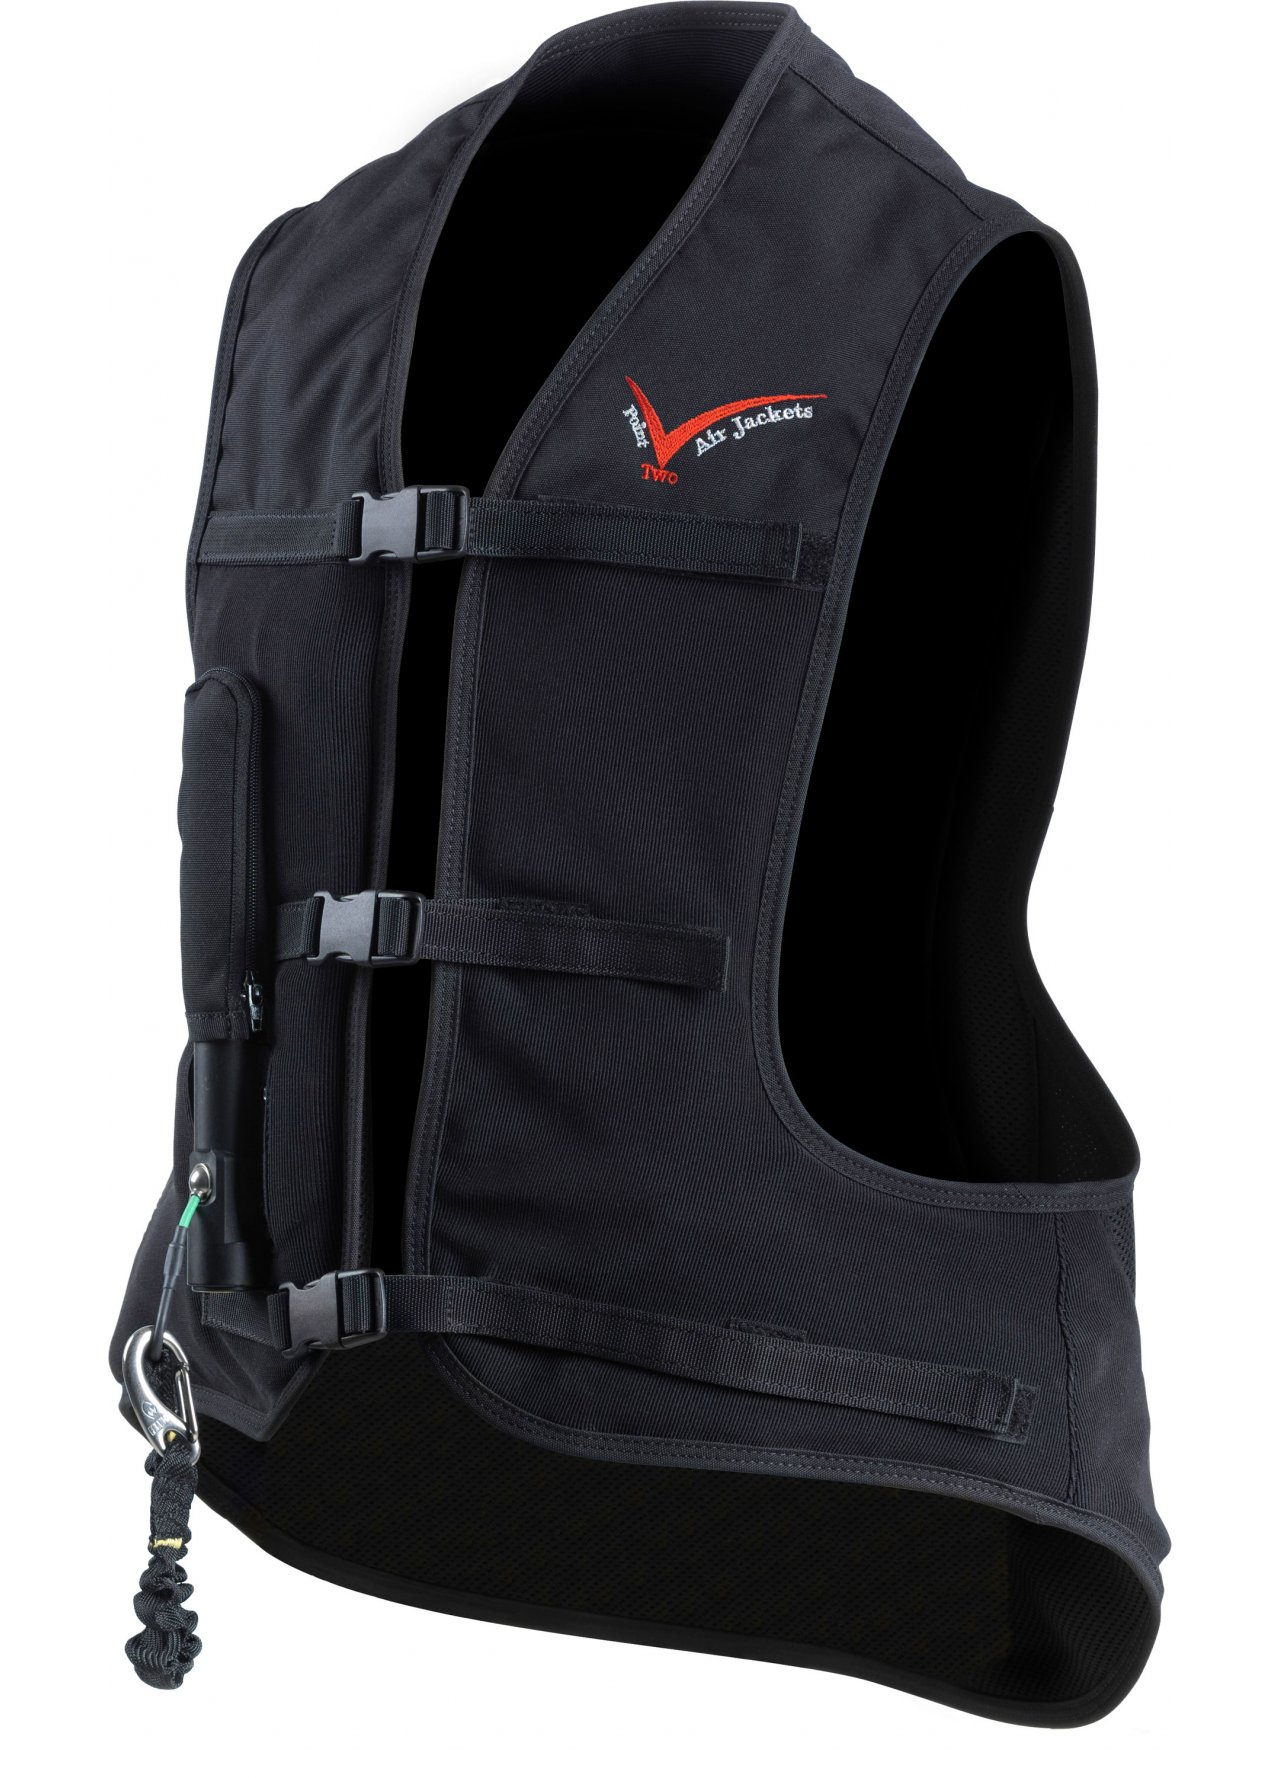 Body Protectors, Back Supports and Air Jackets